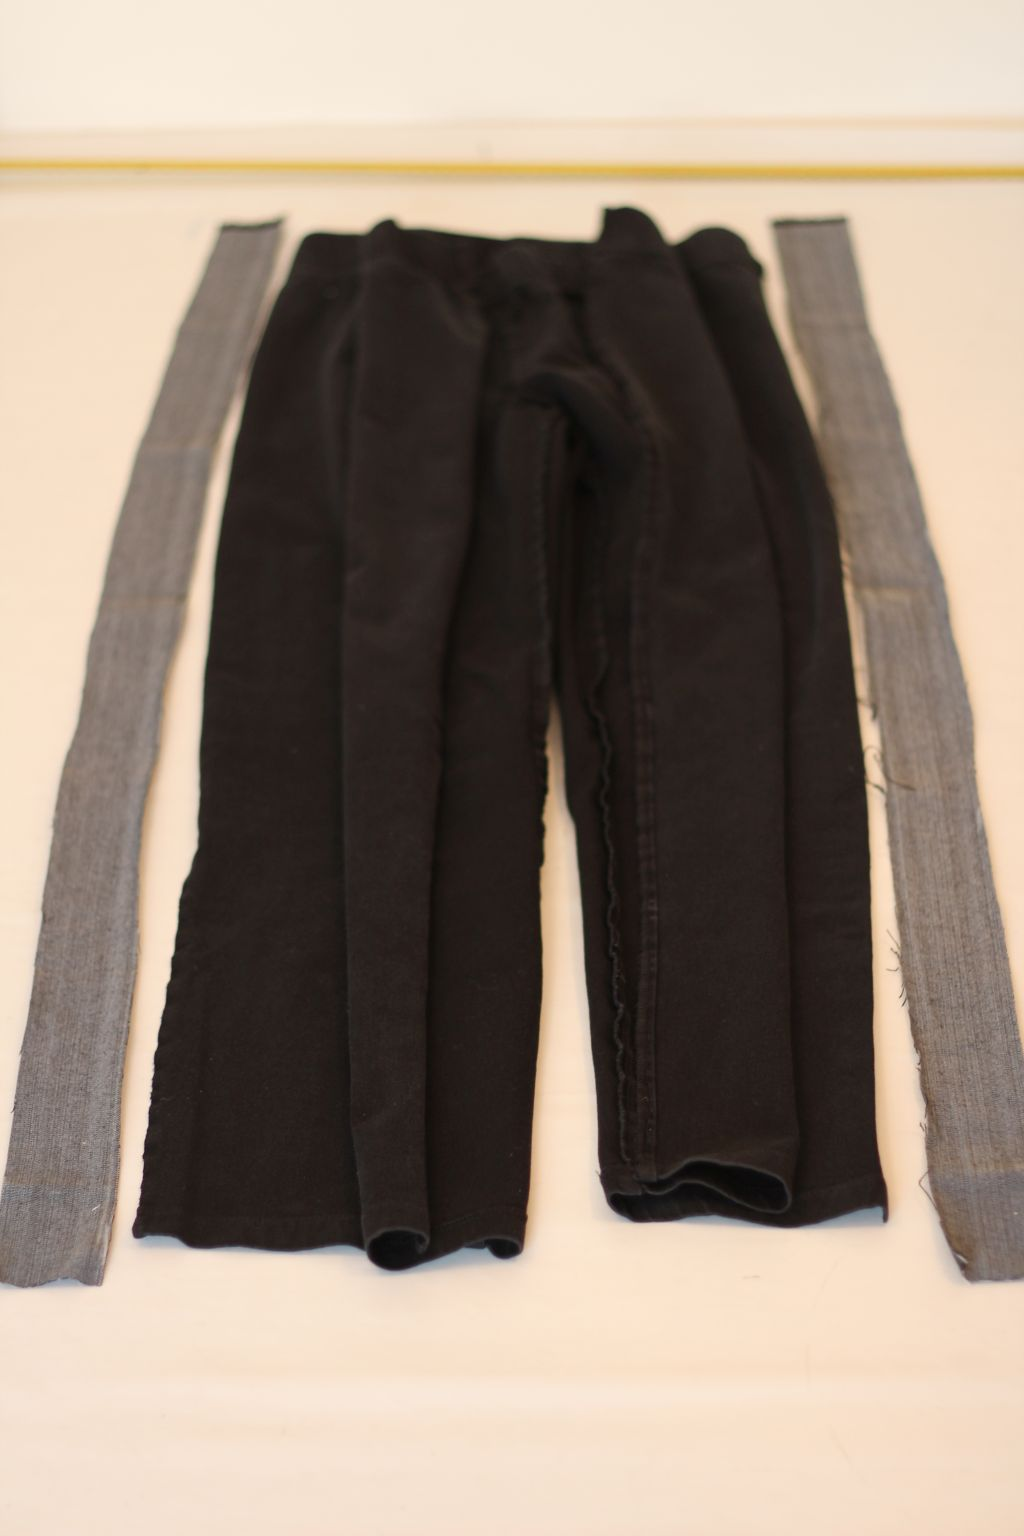 Lay side strips next to pants